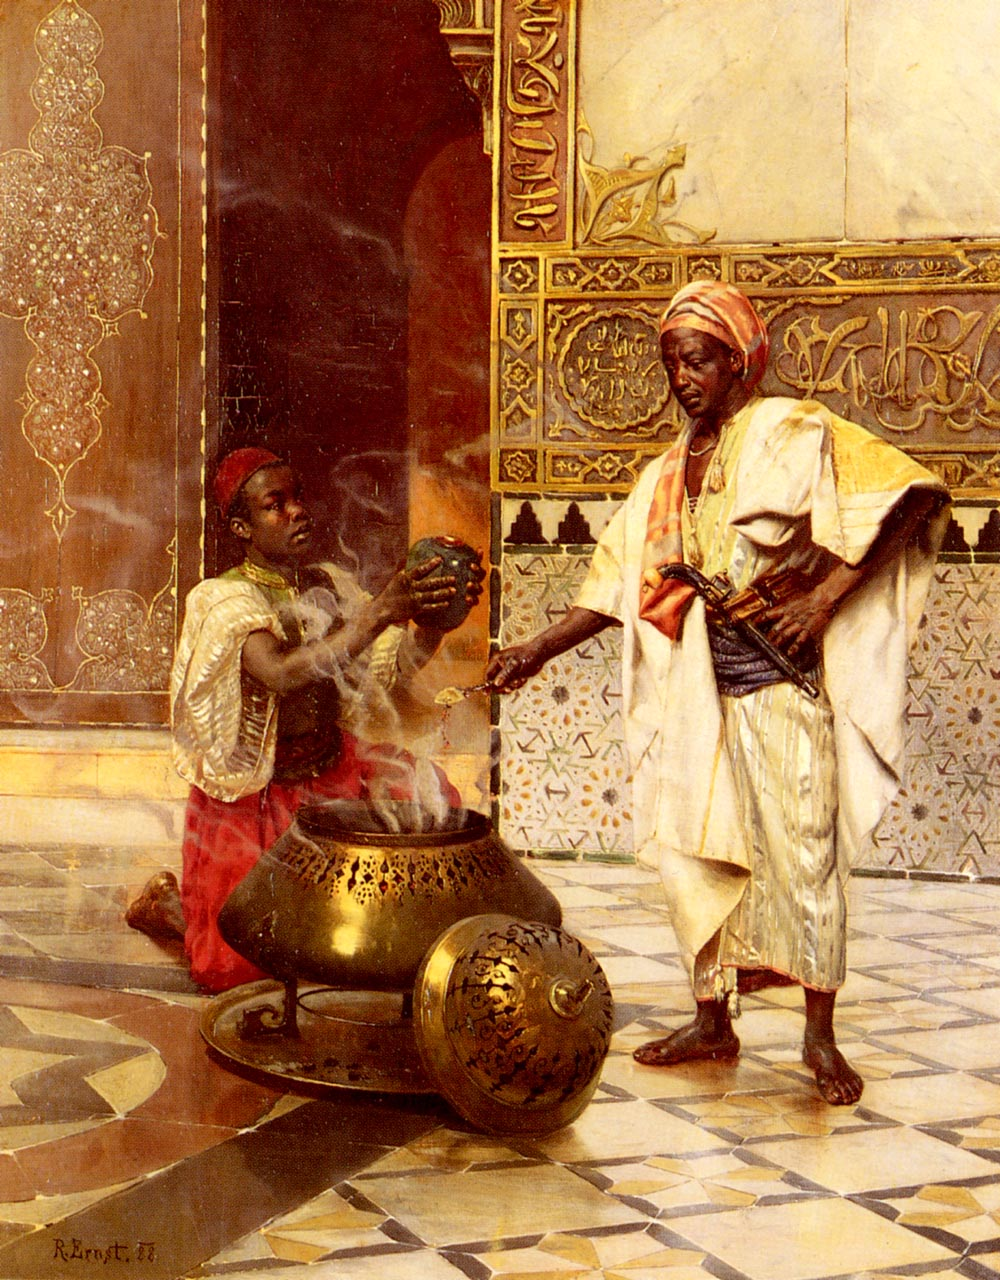 In The Alhambra :: Rudolf Ernst - scenes of Oriental life (Orientalism) in art and painting ôîòî